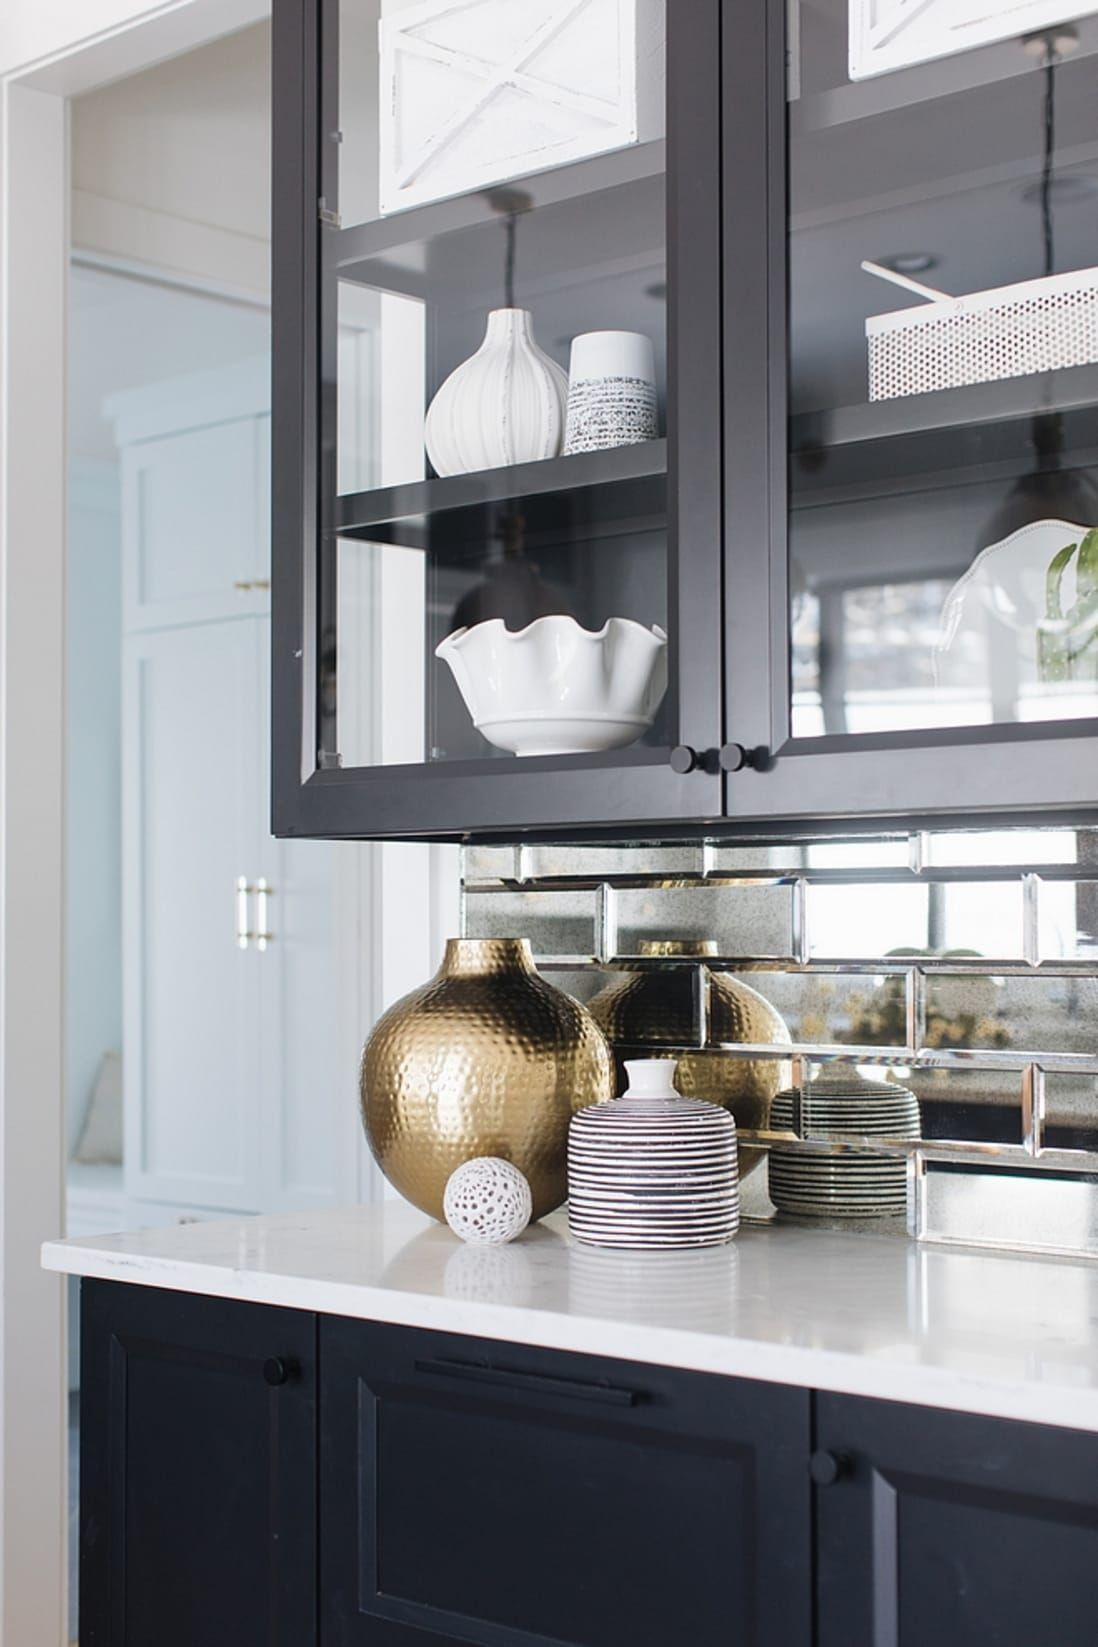 The Best Black Paint Colors For Your Kitchen Cabinets In 2020 Kitchen Cabinet Trends Black Kitchen Cabinets Black Cabinets